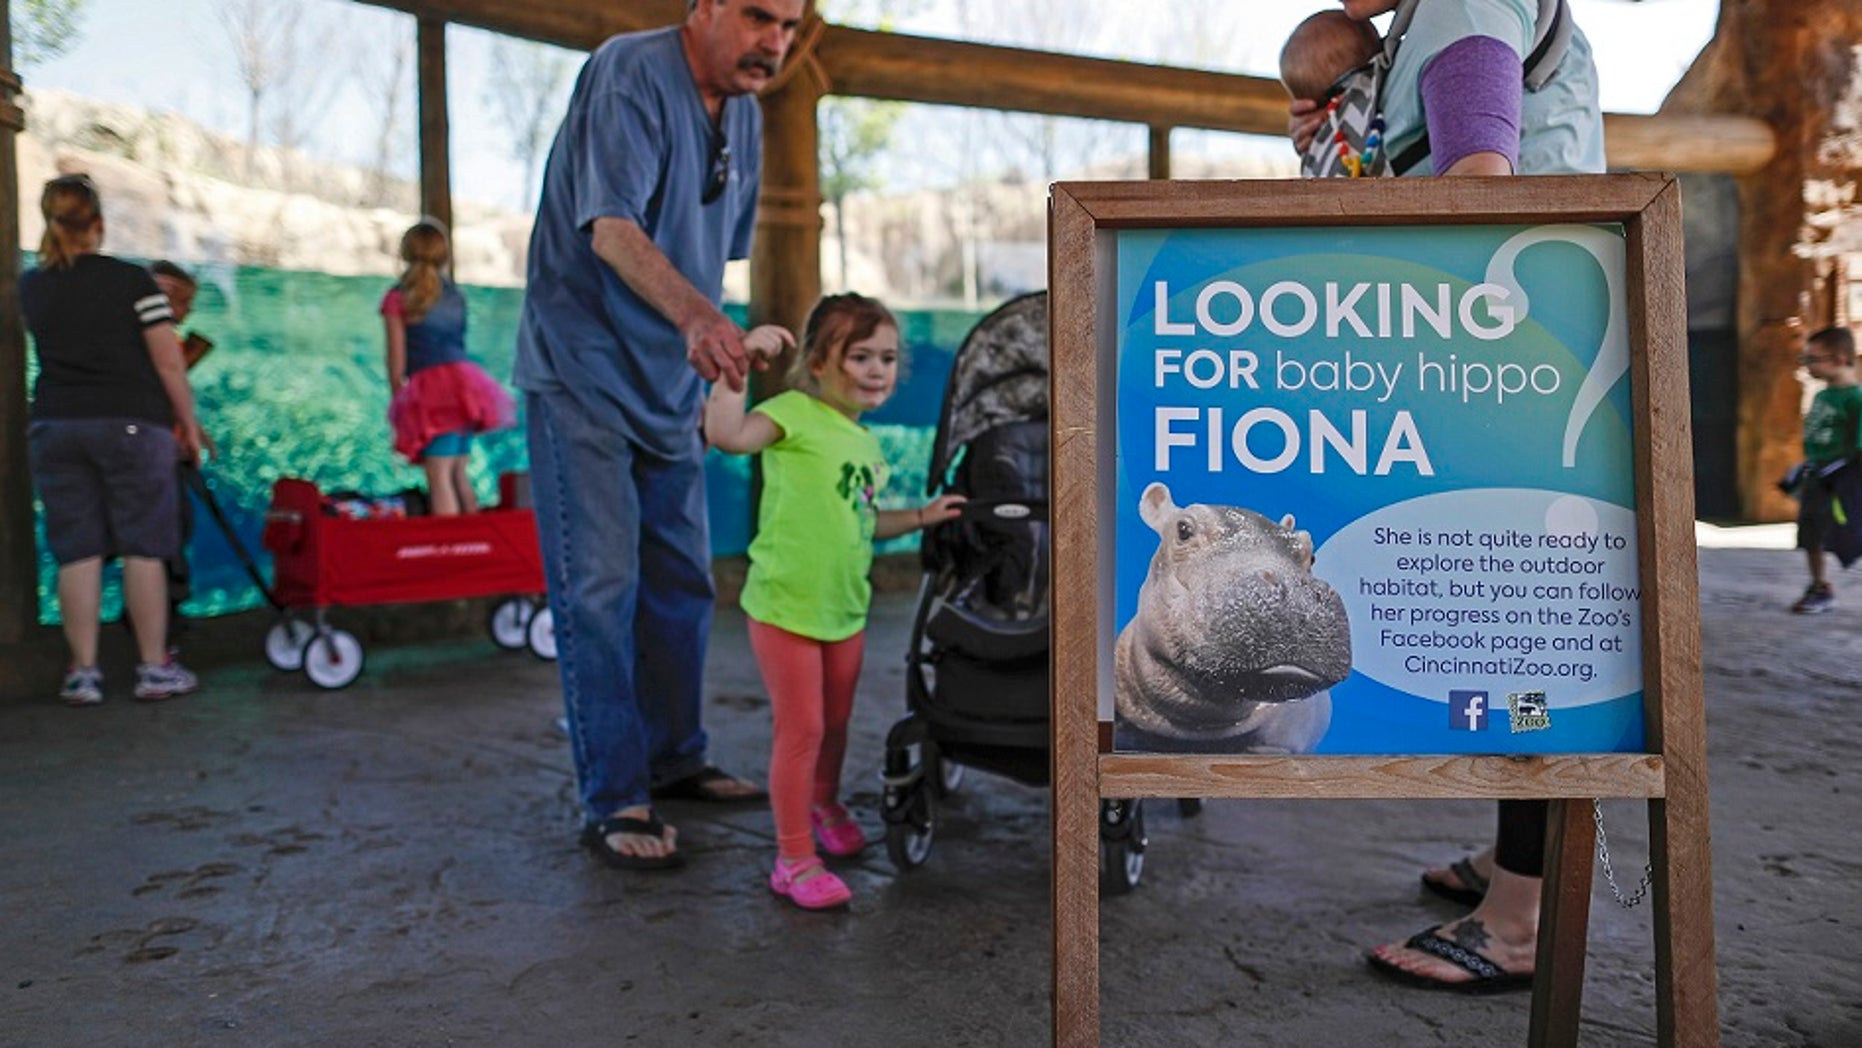 The Cincinnati Zoo and Botanical Garden announced that Fiona the hippo will make her media debut on Wednesday, May 31, 2017.